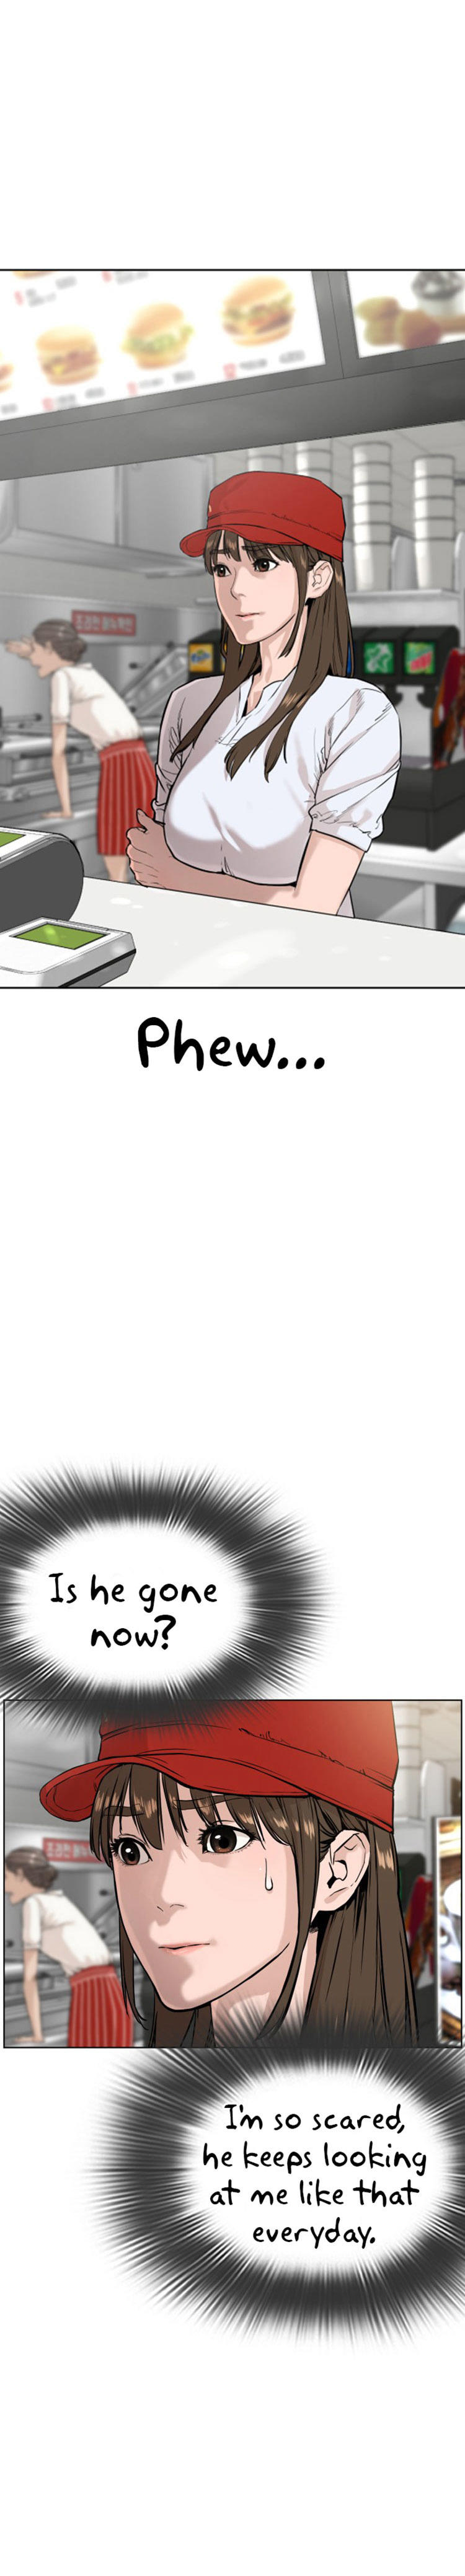 How To Fight Chapter 20: Are You Asking If I'm Pretty? page 39 - Mangakakalots.com